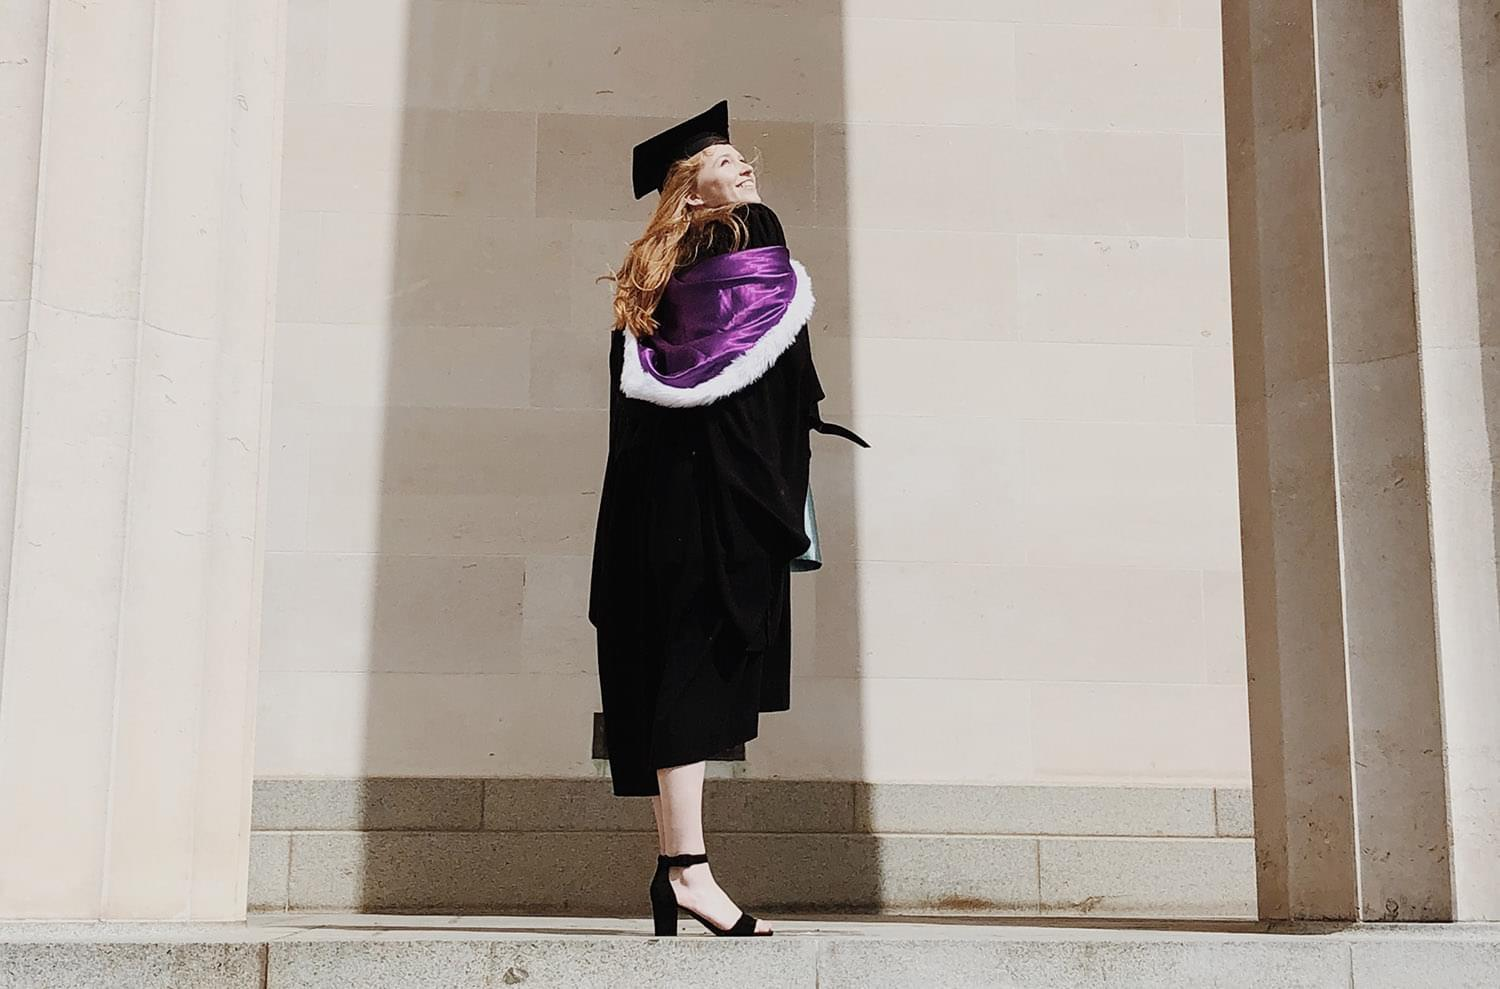 Woman wearing a mortar board hat and gown standing in front of a building